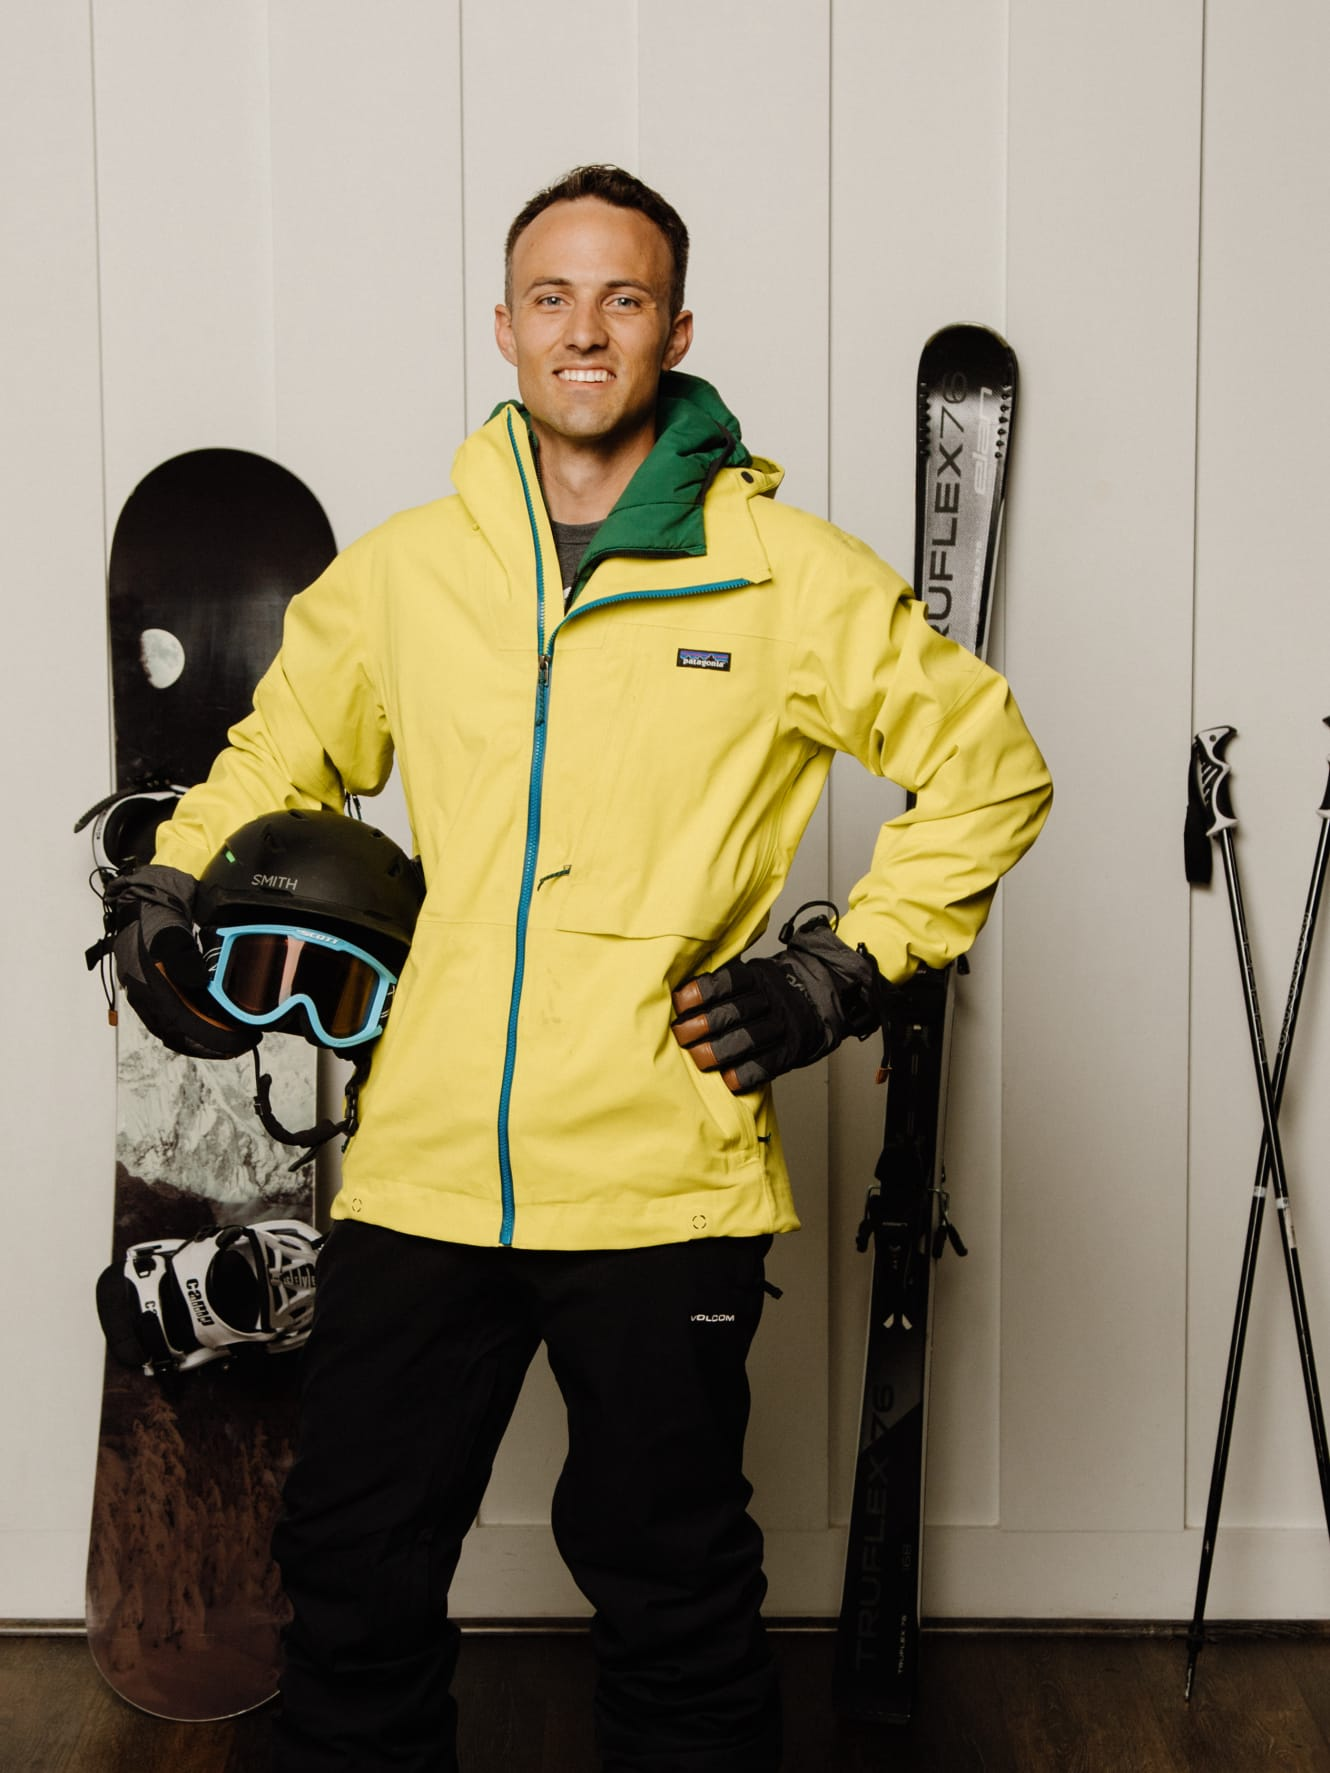 Kent wearing snow clothes with skis and a snowboard